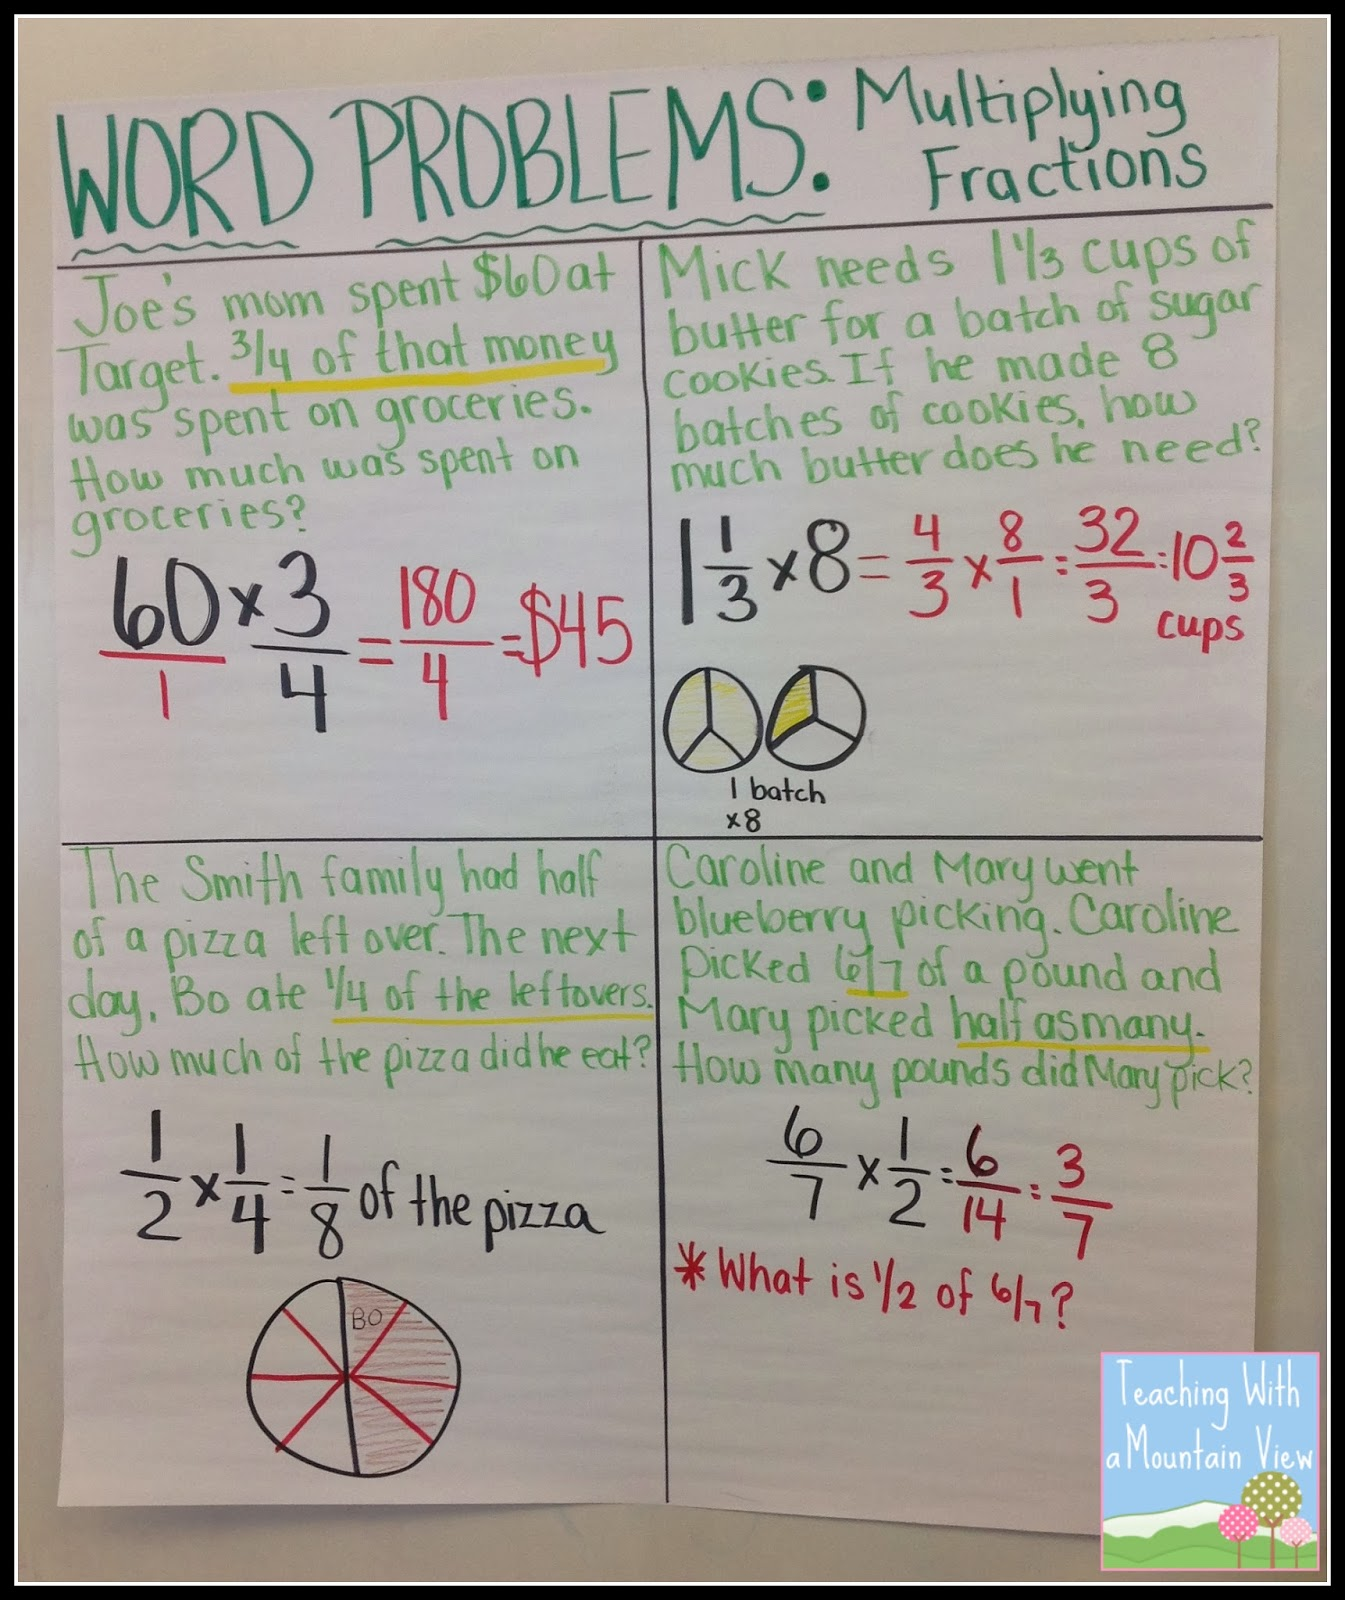 Worksheet Fraction Multiplication And Division Word Problems teaching with a mountain view making sense of multiplying we dissected these word problems underlined key phrases that they felt helped them to know what type problem were reading and